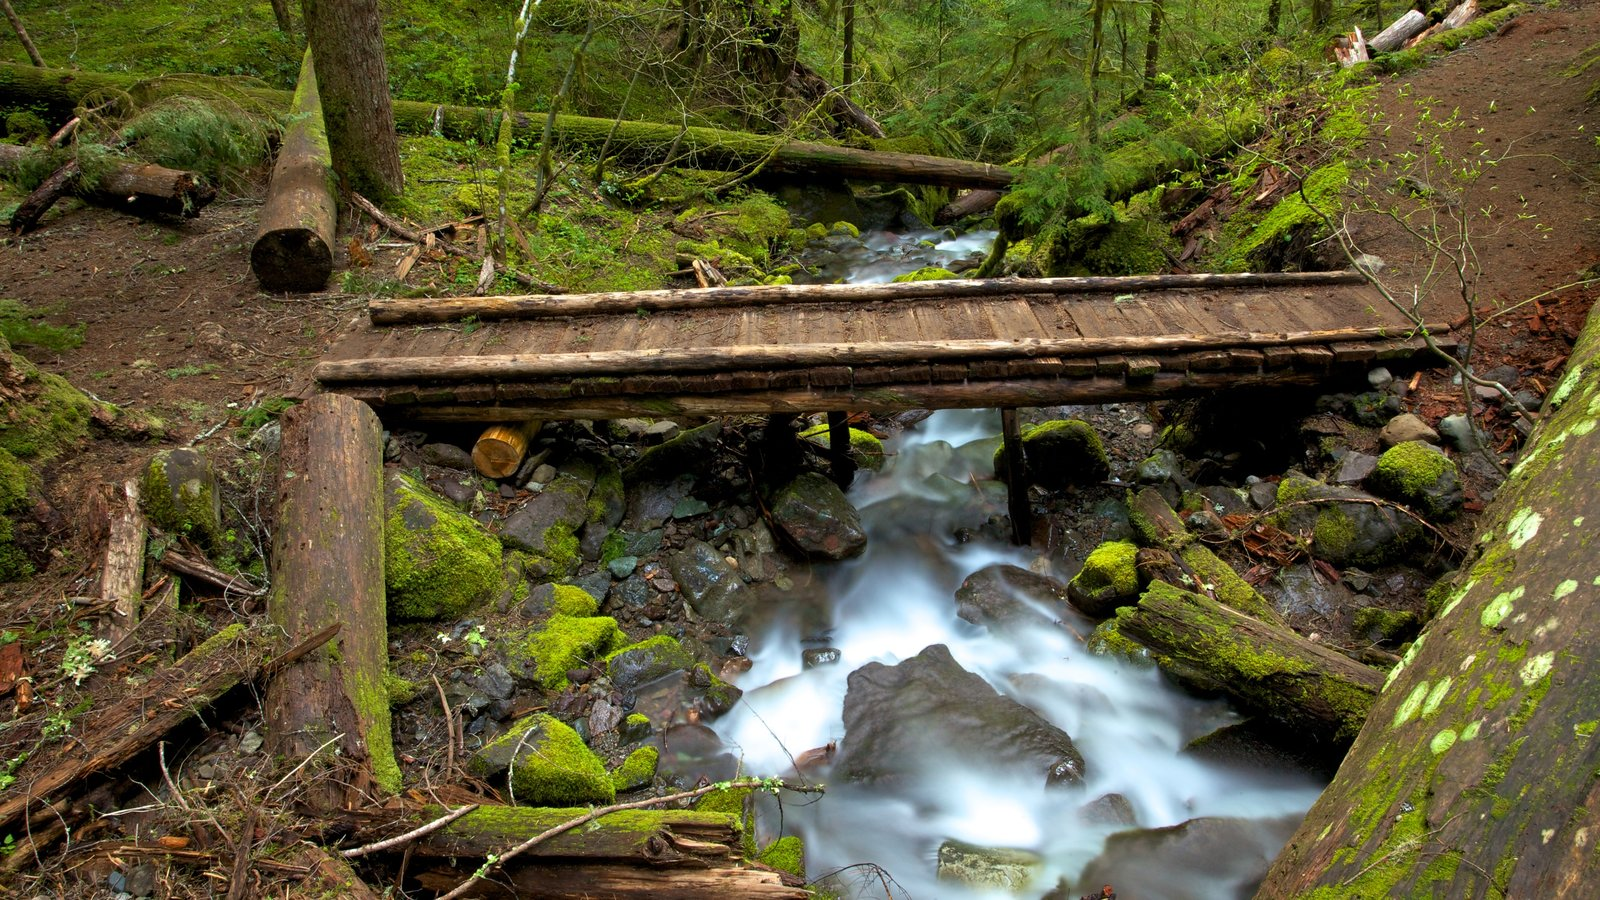 Mount Rainier National Park which includes landscape views, a bridge and a river or creek